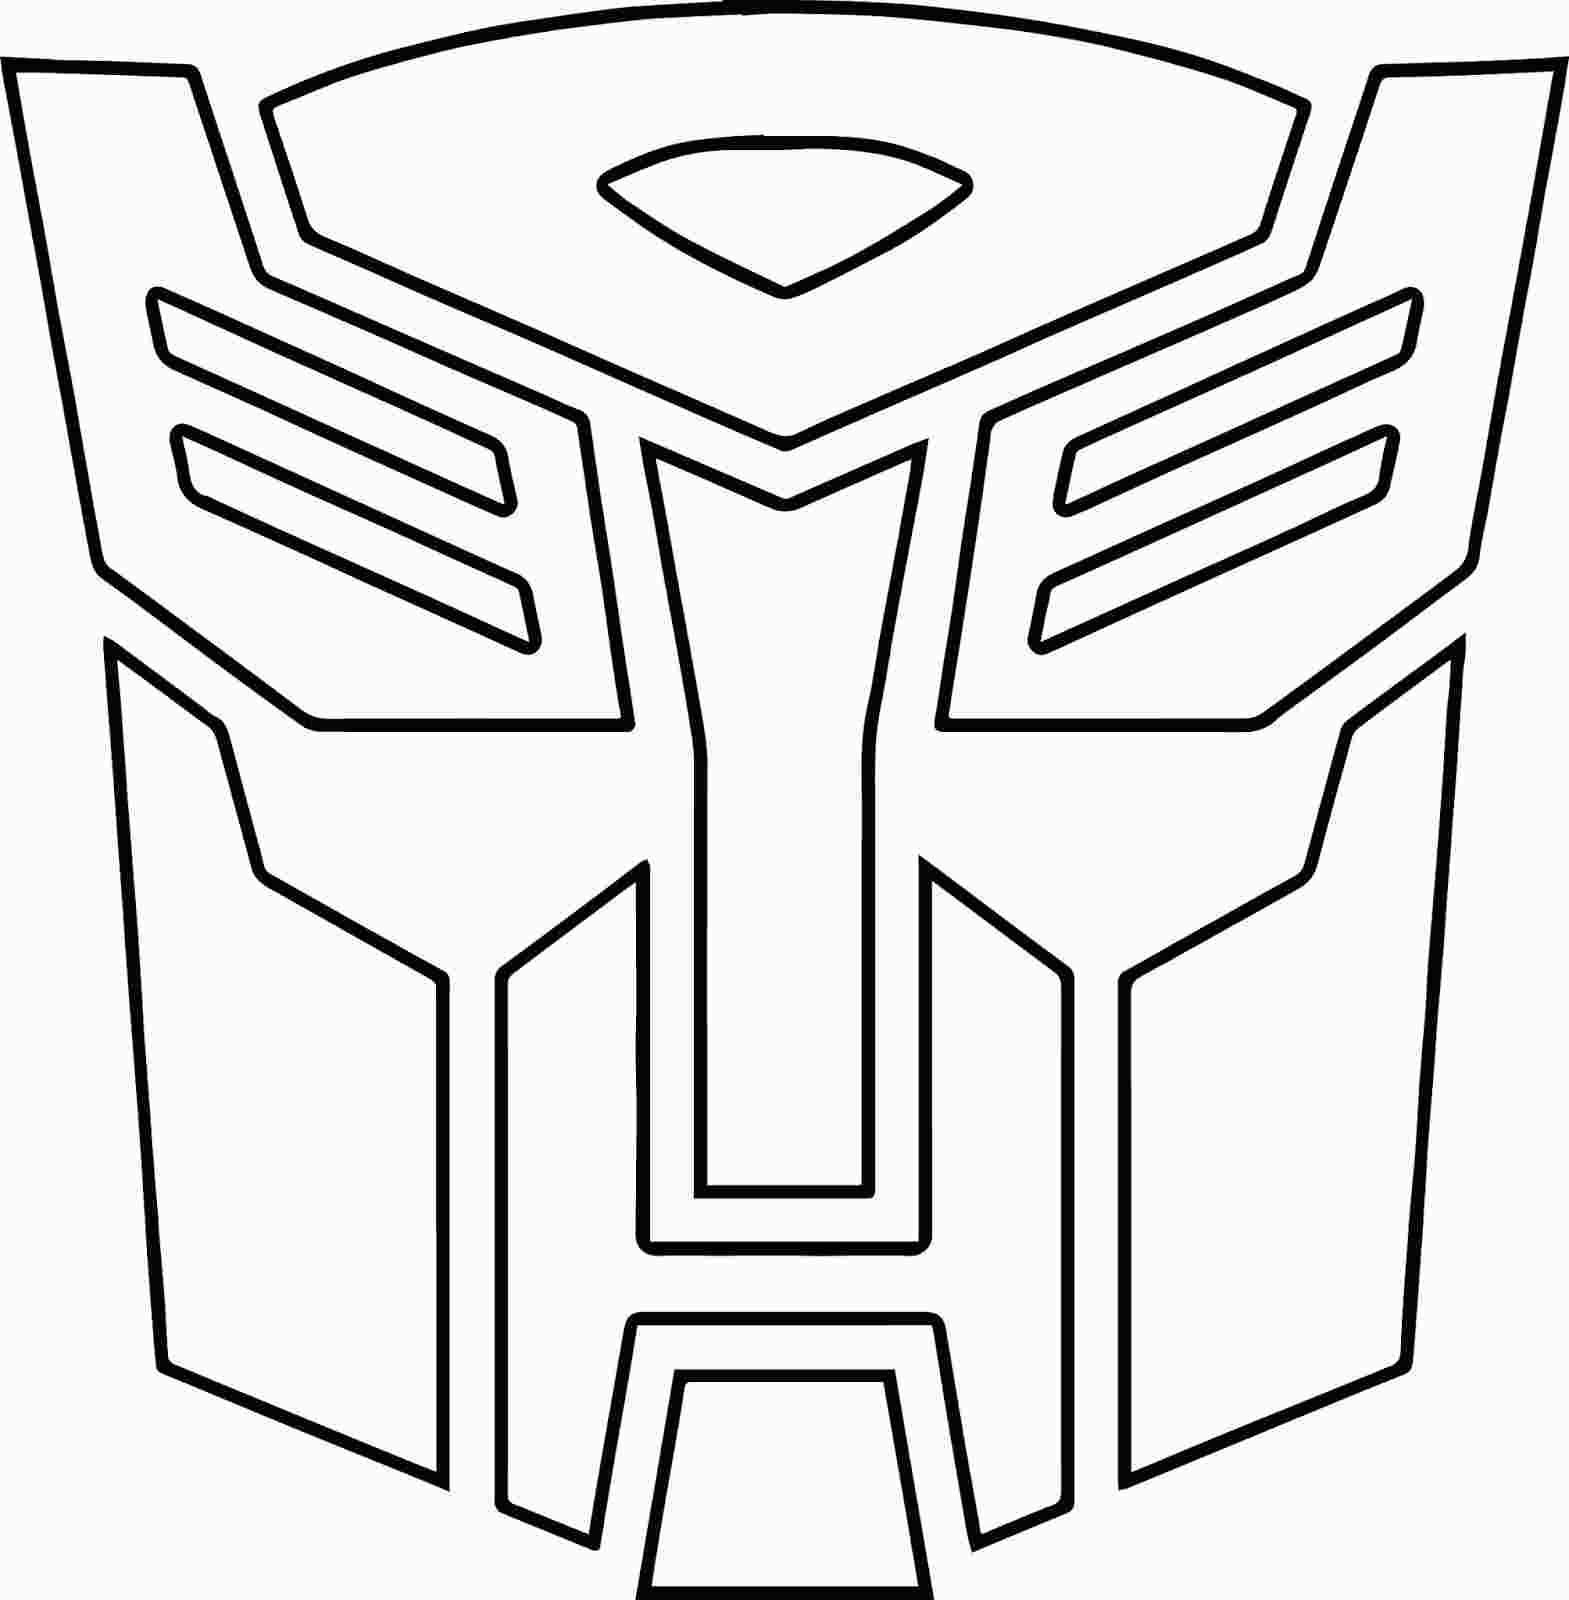 Transformers Logo Coloring Pages Transformers Cake Transformers Birthday Cake Transformer Birthday